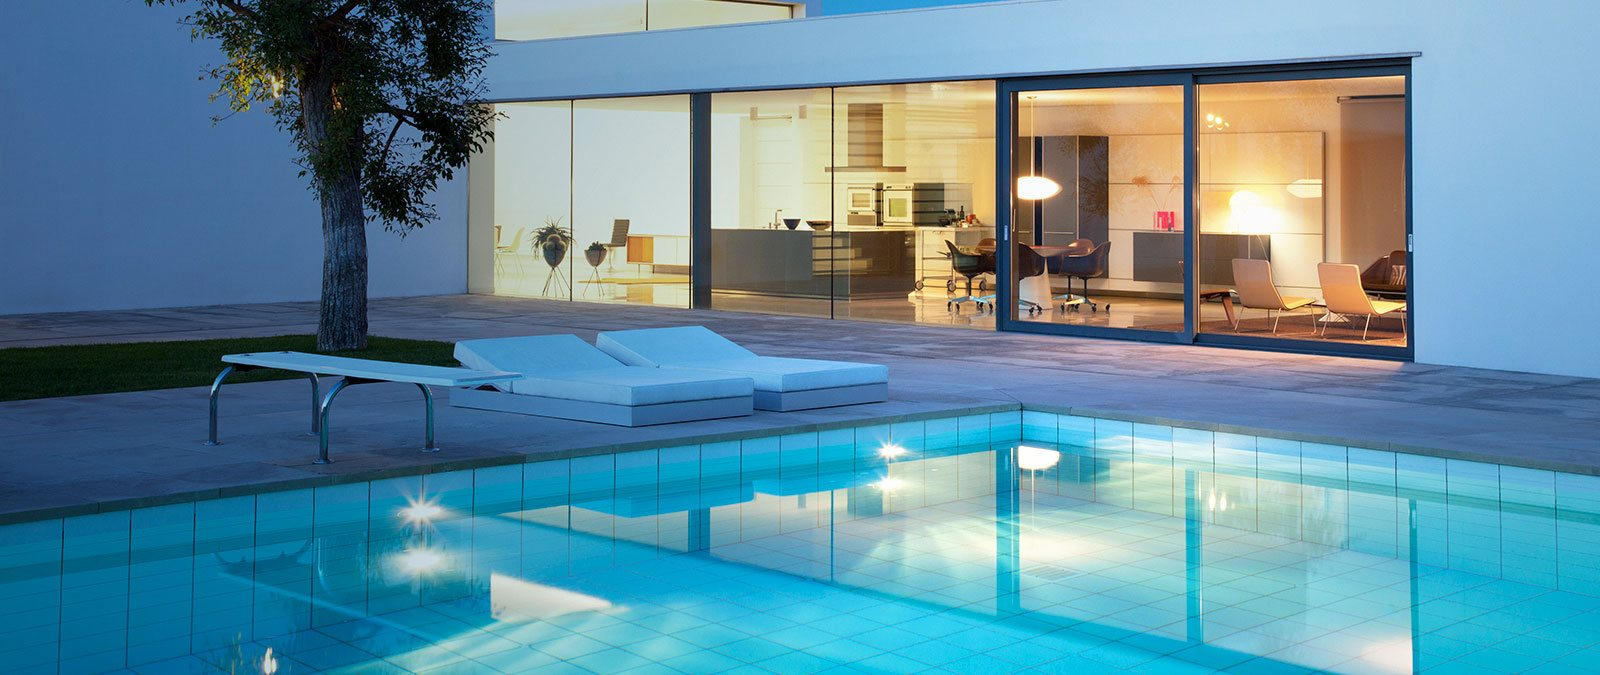 Modern house with clean water pool